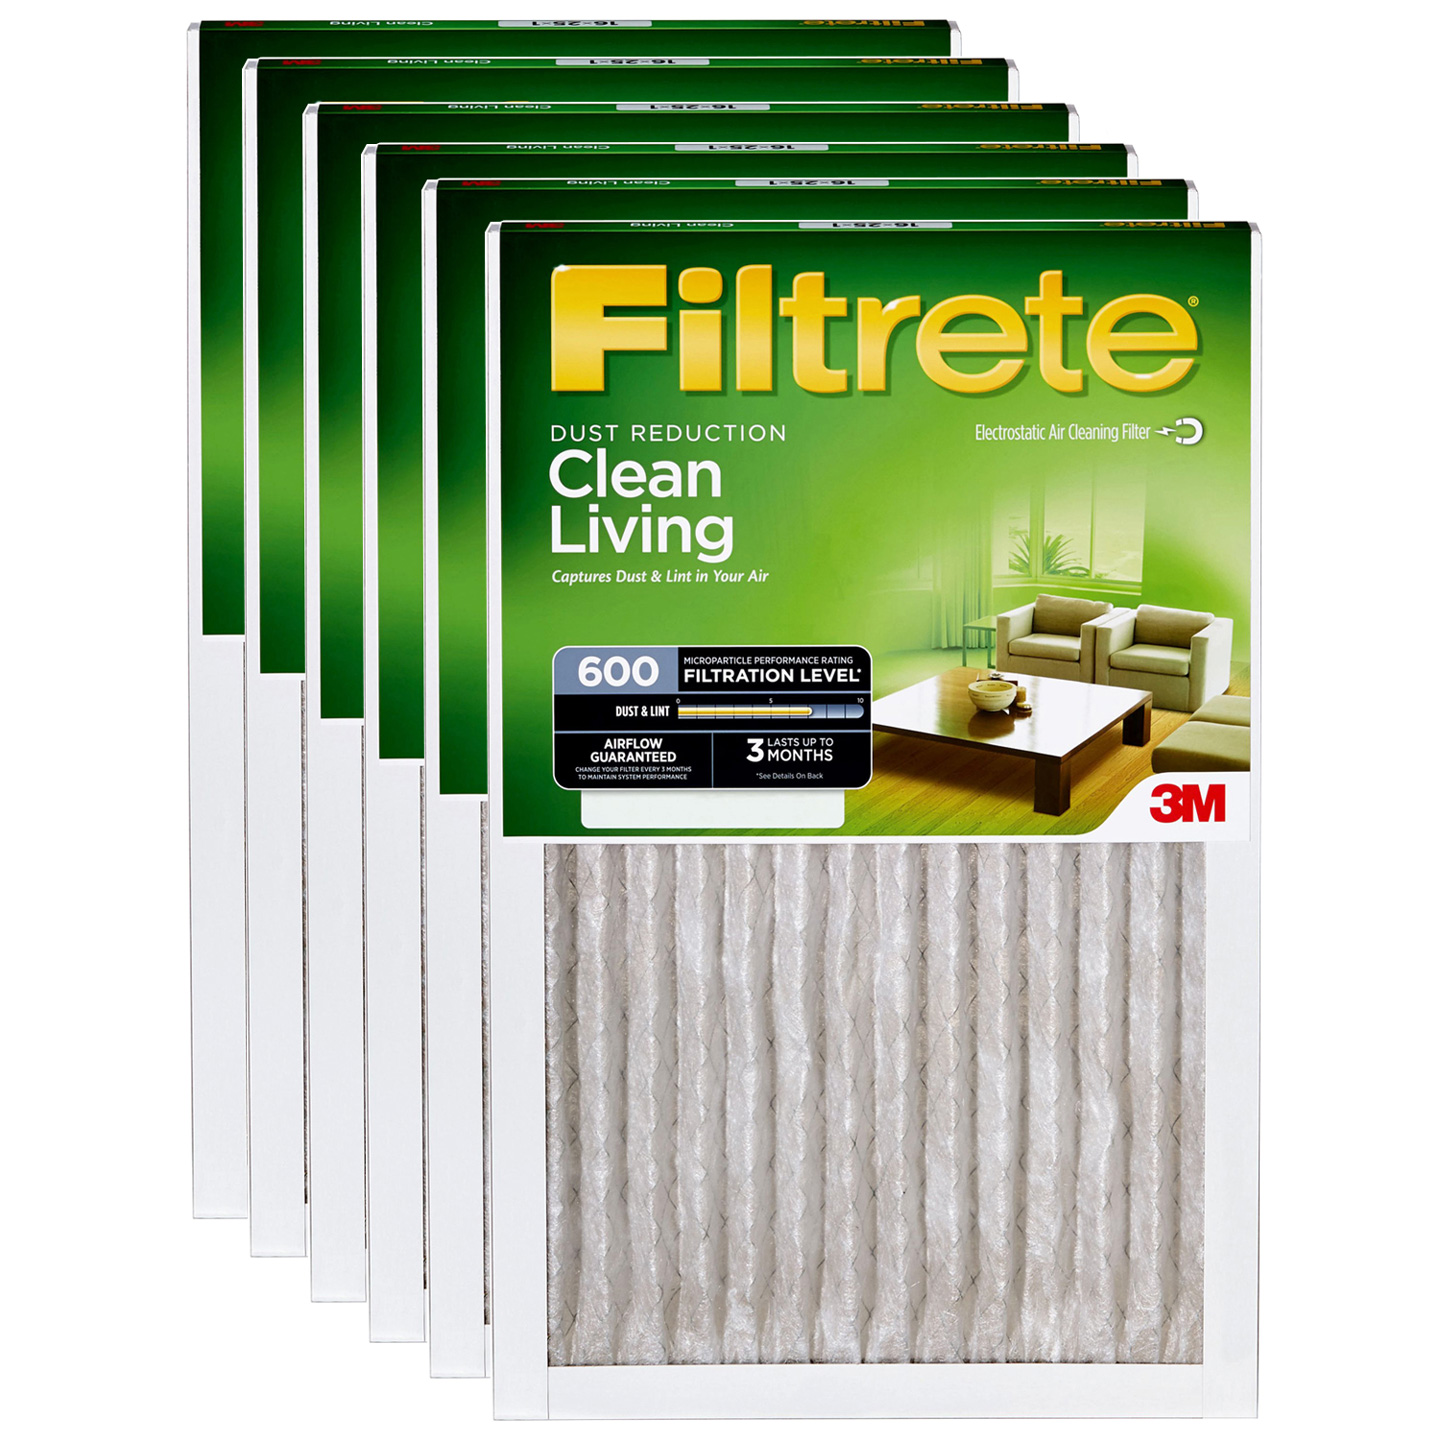 Filtrete 600 Dust Reduction Clean Living Filter - 12x20x1 (6-Pack) FILTRETE_DUST_12x20x1_6_PACK